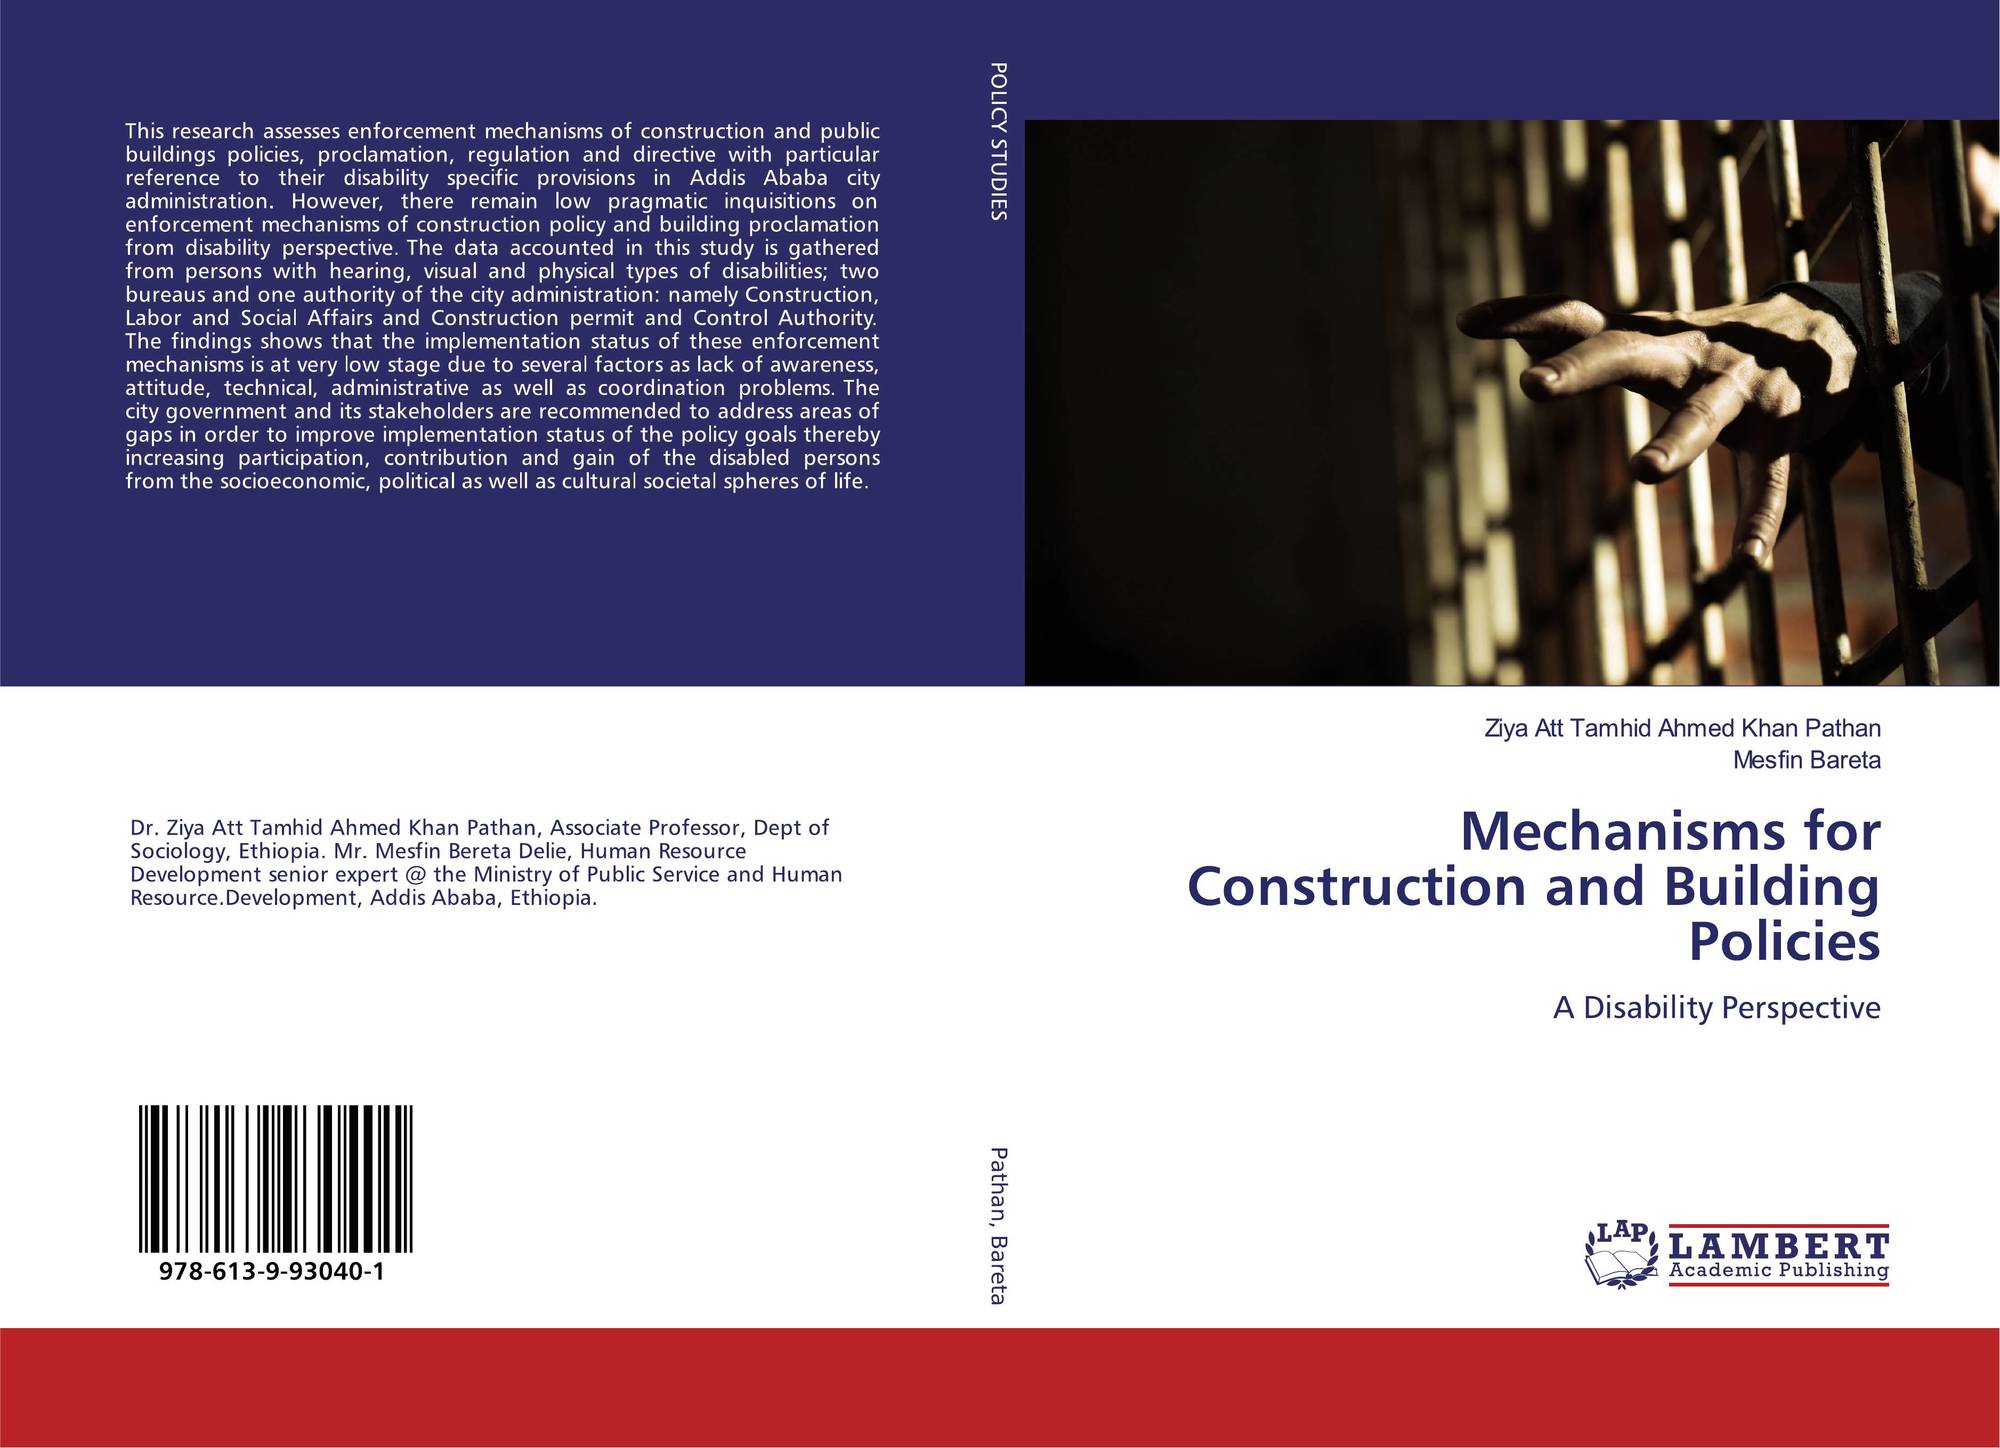 Mechanisms for Construction and Building Policies, 978-613-9